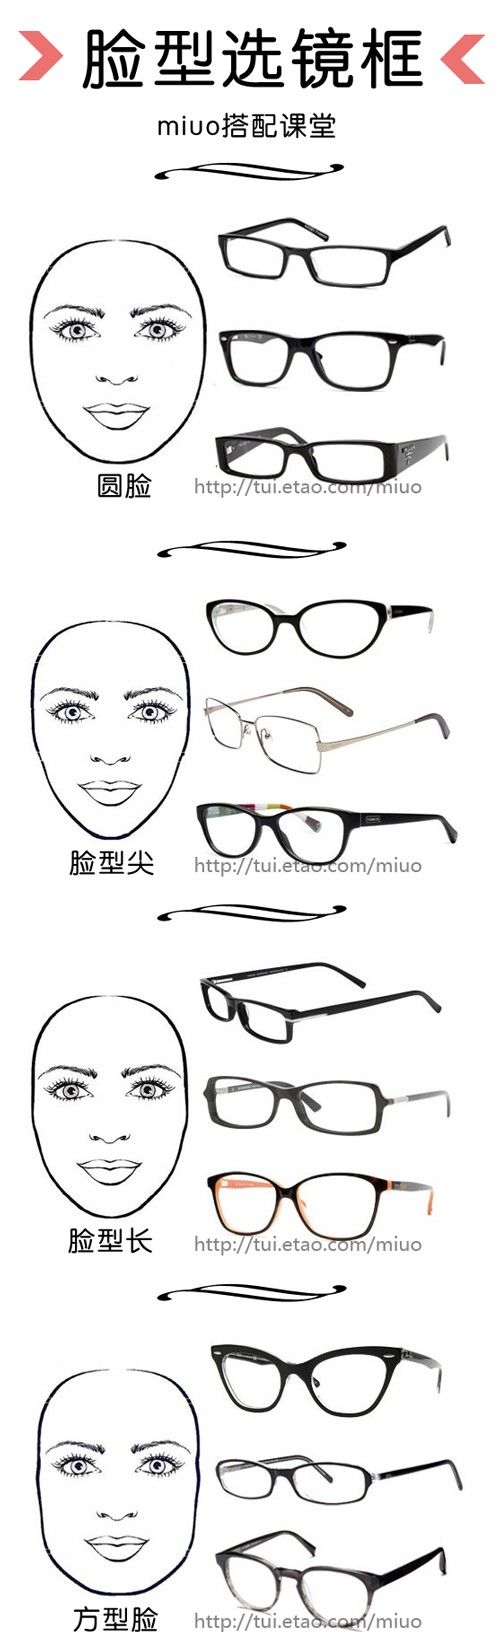 Glasses style for your face shape | I wonder how much I'd agree with this. Will pull it up before buying my next pair.